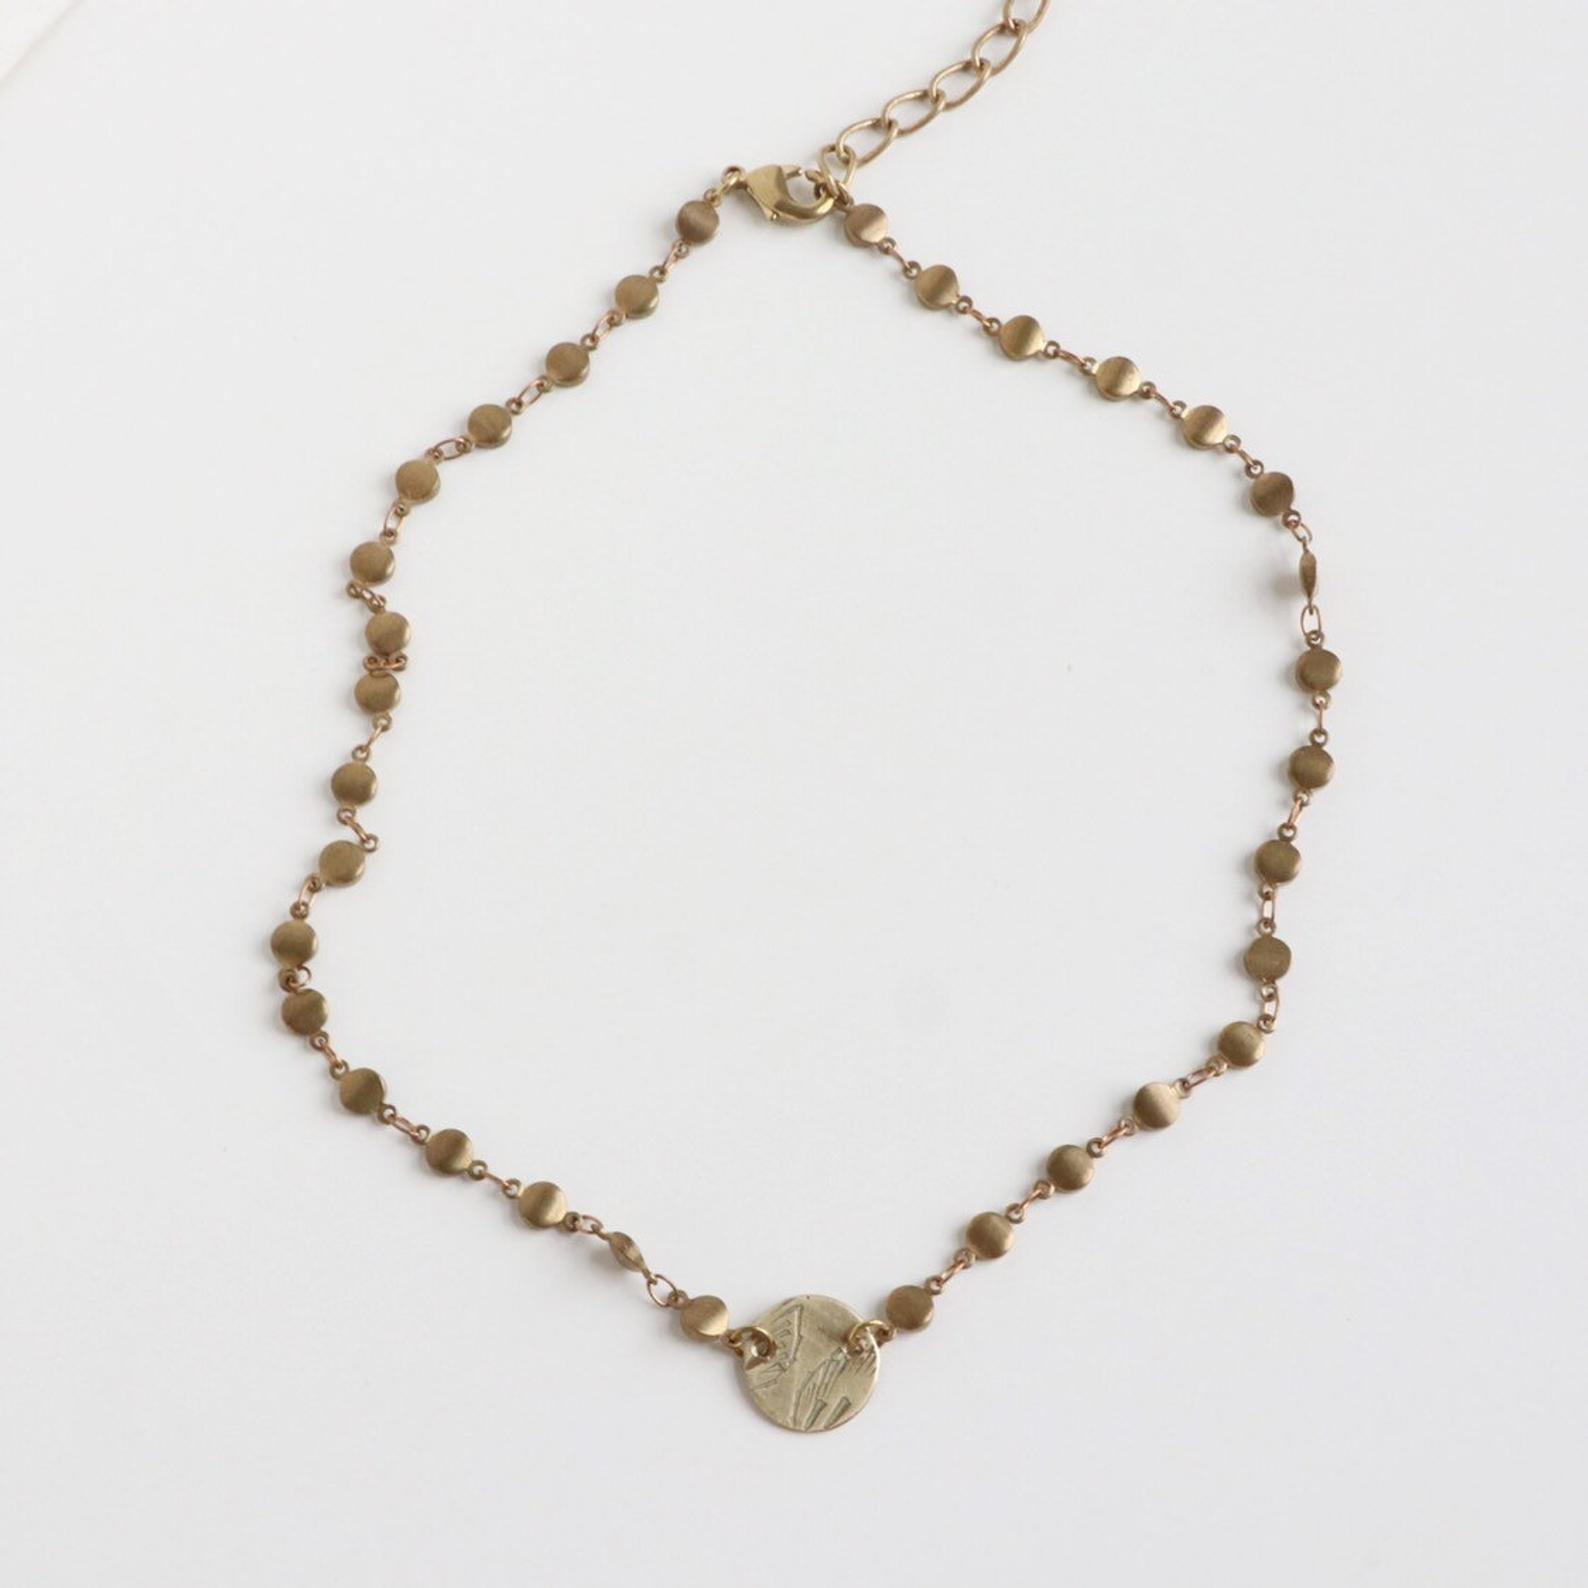 Souvenir Handmade Vintage Brass Coin Choker Unique Coin Design